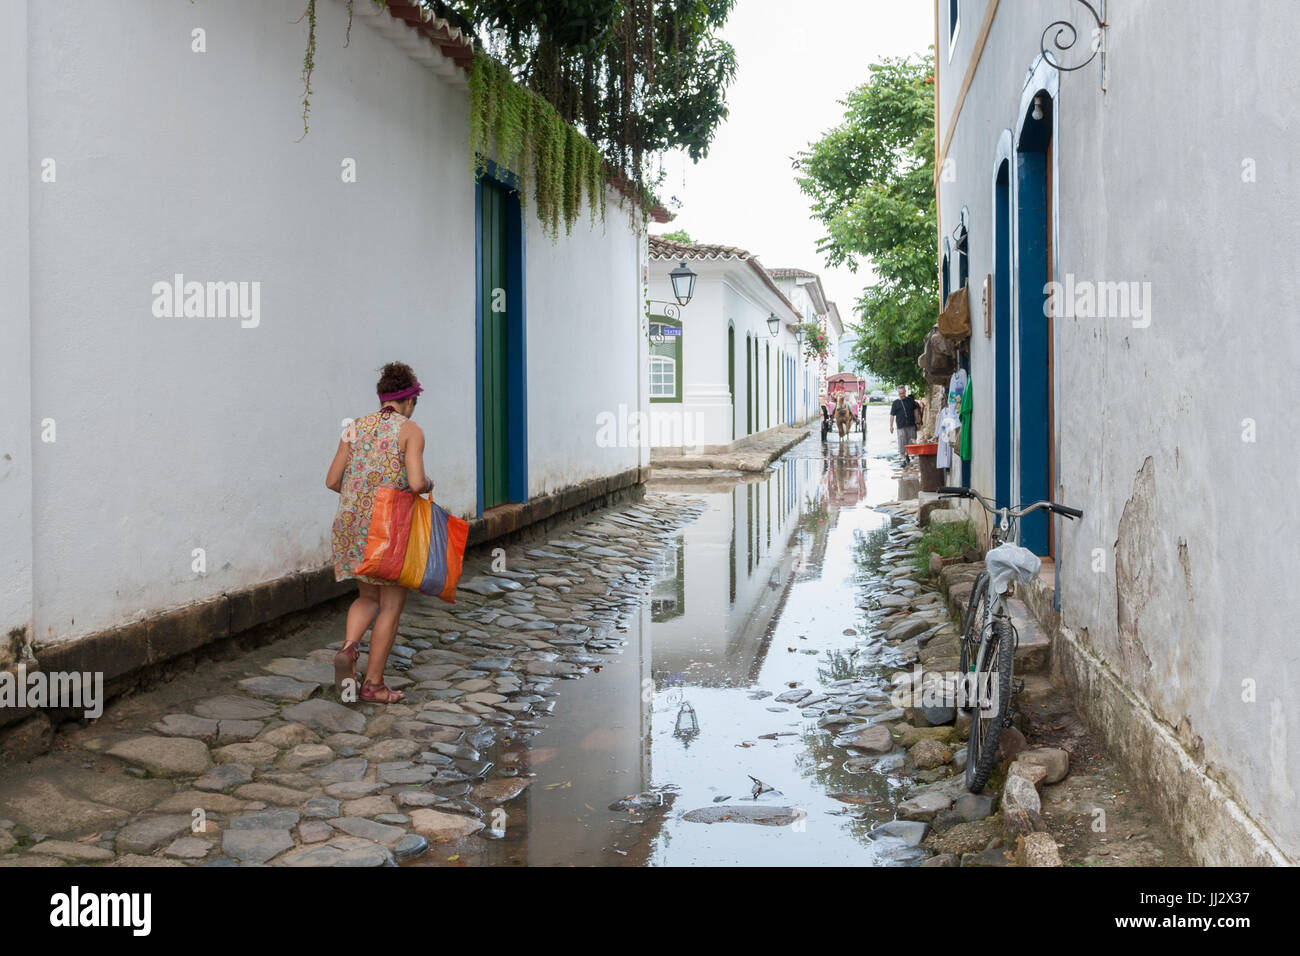 Woman walking on cobblestone street  flooded by incoming tide alongside colonial houses, Paraty, Rio de Janeiro, - Stock Image